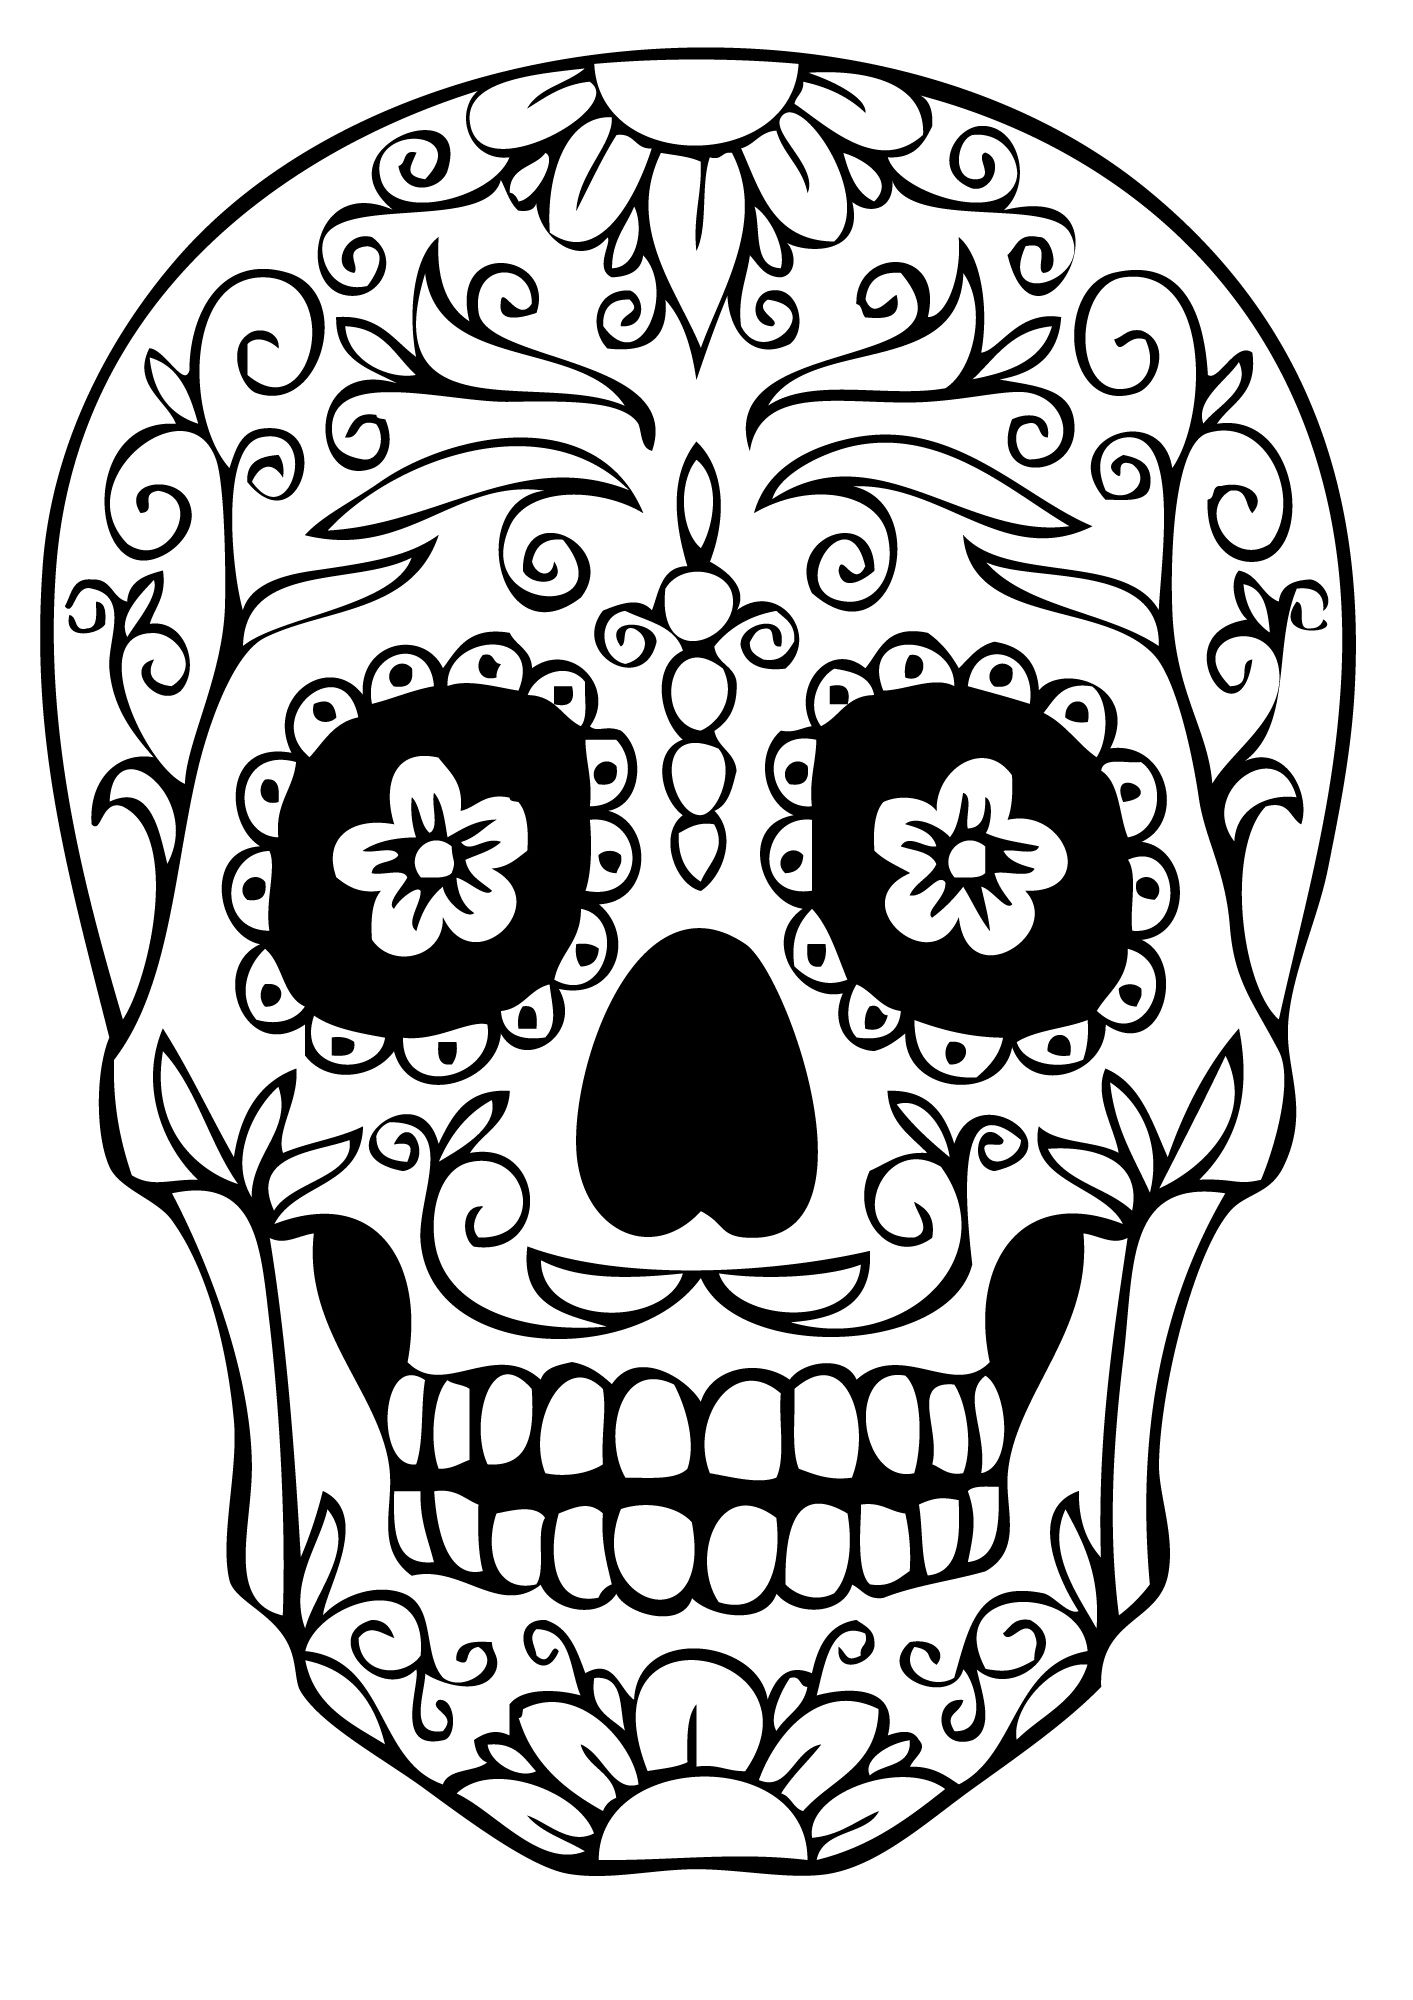 sugar skull coloring pages printable sugar skull coloring pages best coloring pages for kids skull coloring printable pages sugar